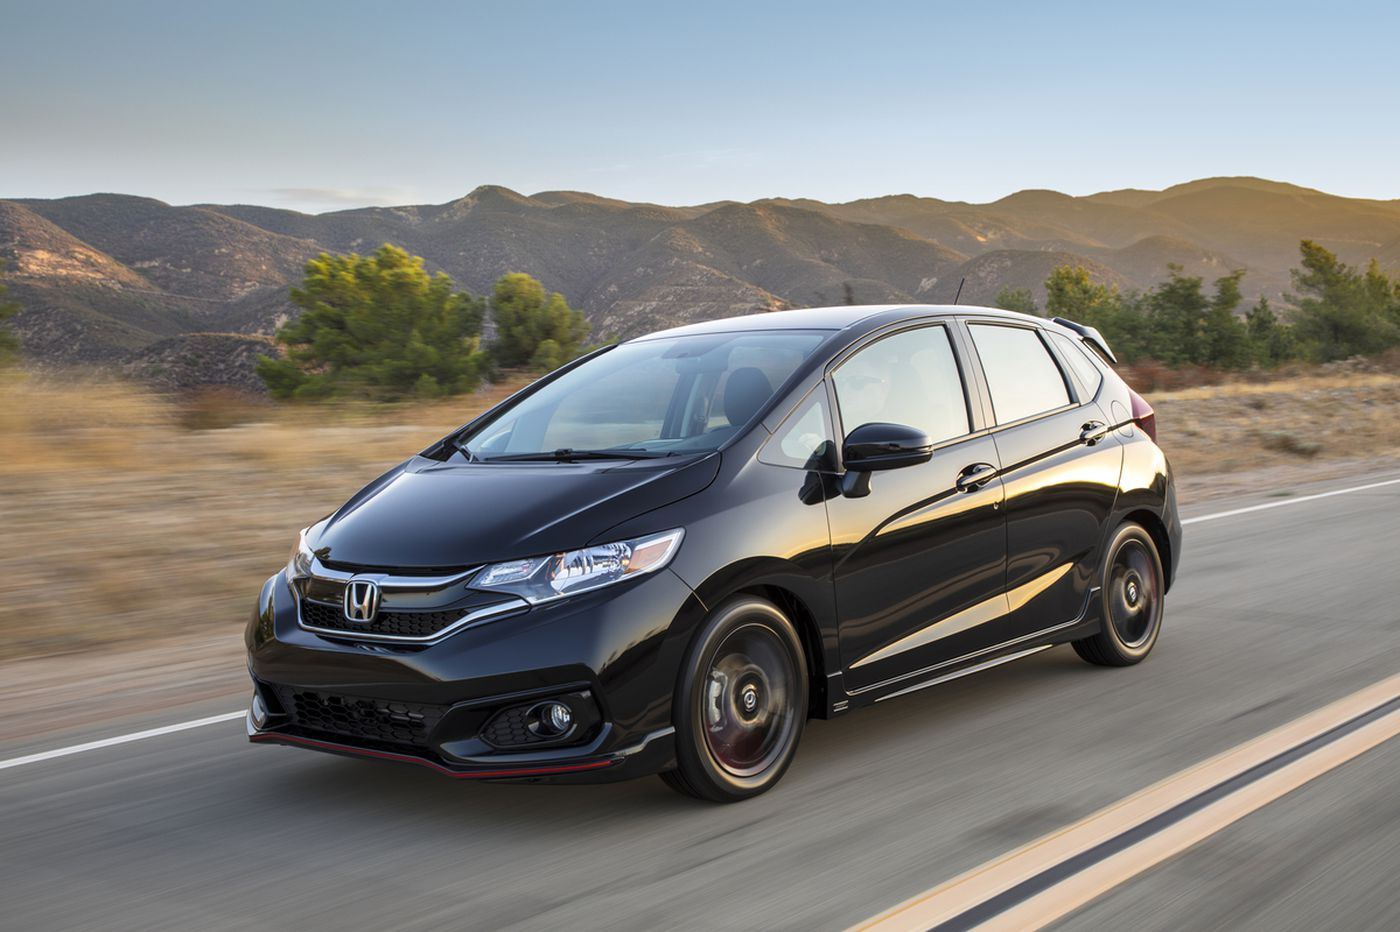 Honda Fit gets new look for 2018